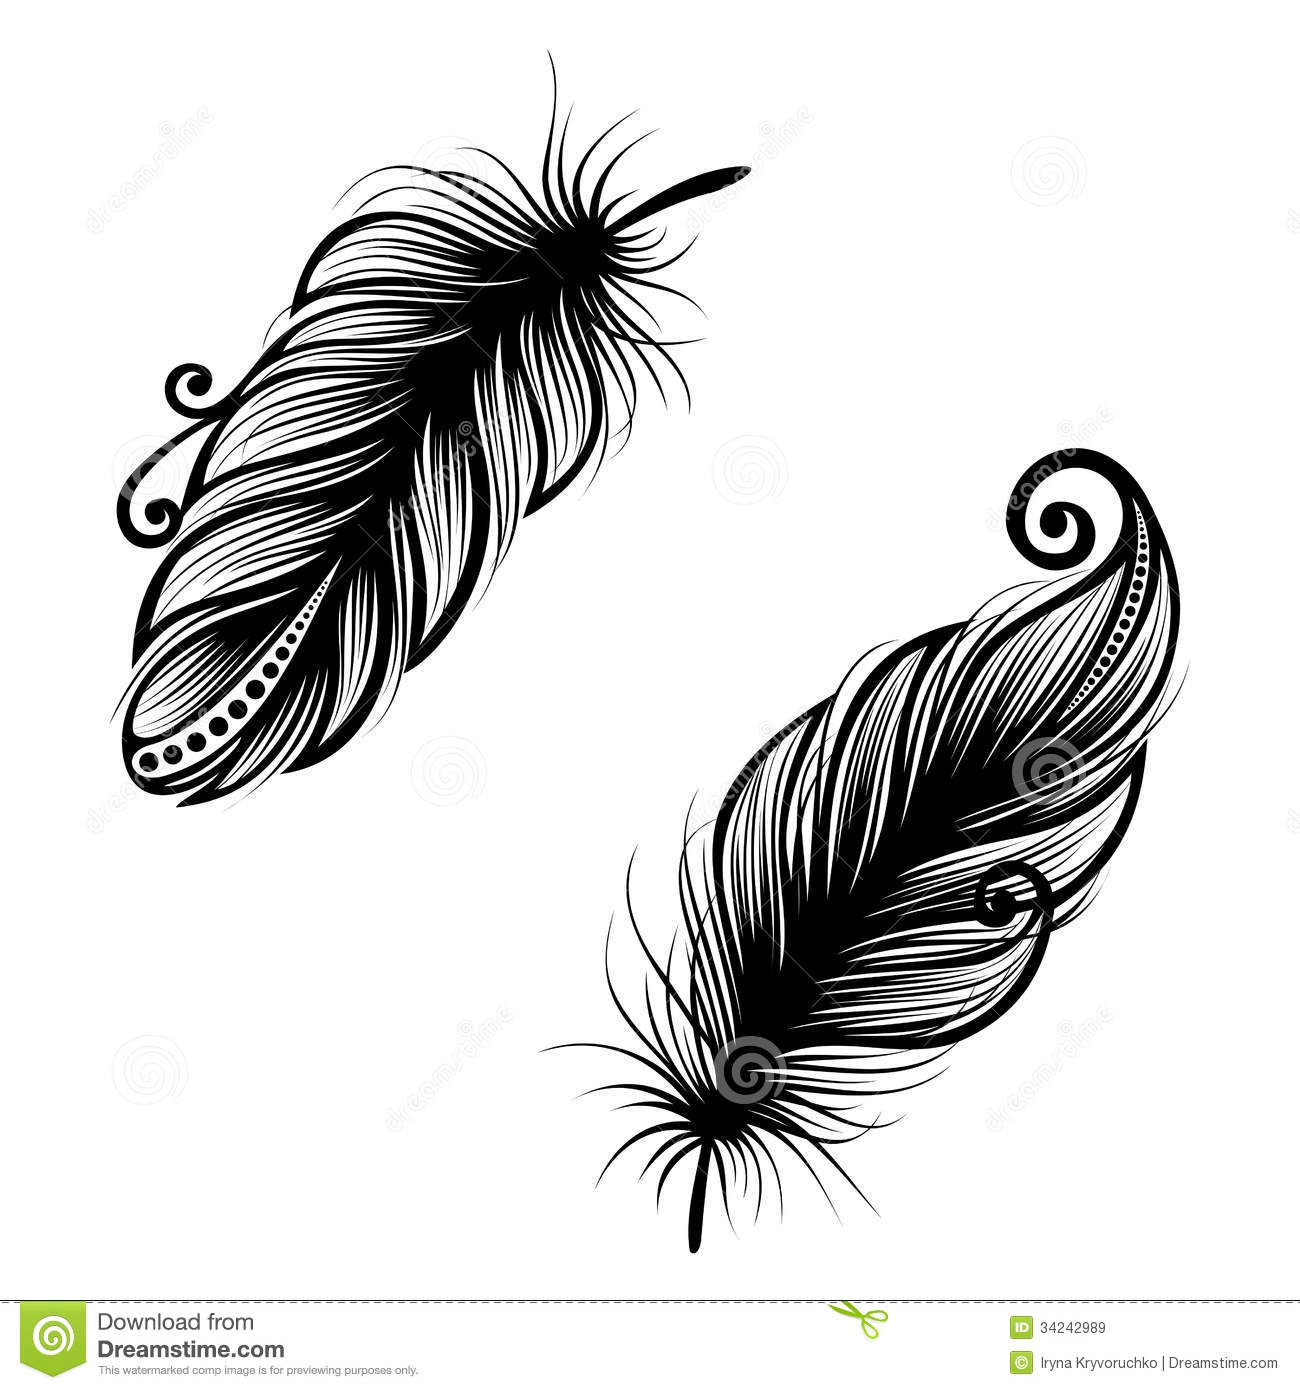 Abstract Feather Bird Royalty Free Stock Images - Image: 34242989